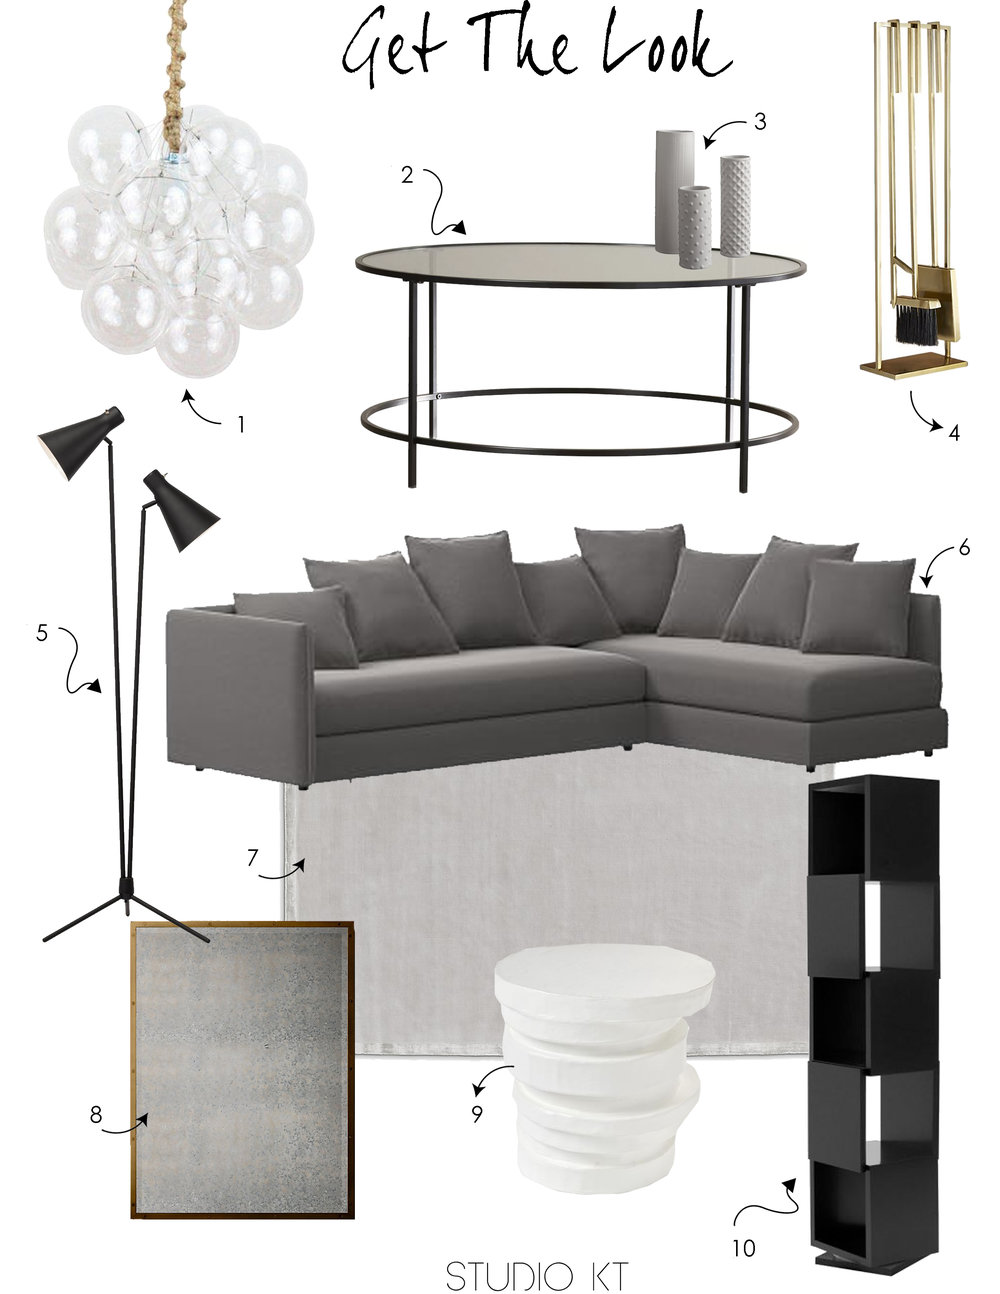 Studio KT- Get the look:: Eclectic living room.jpg